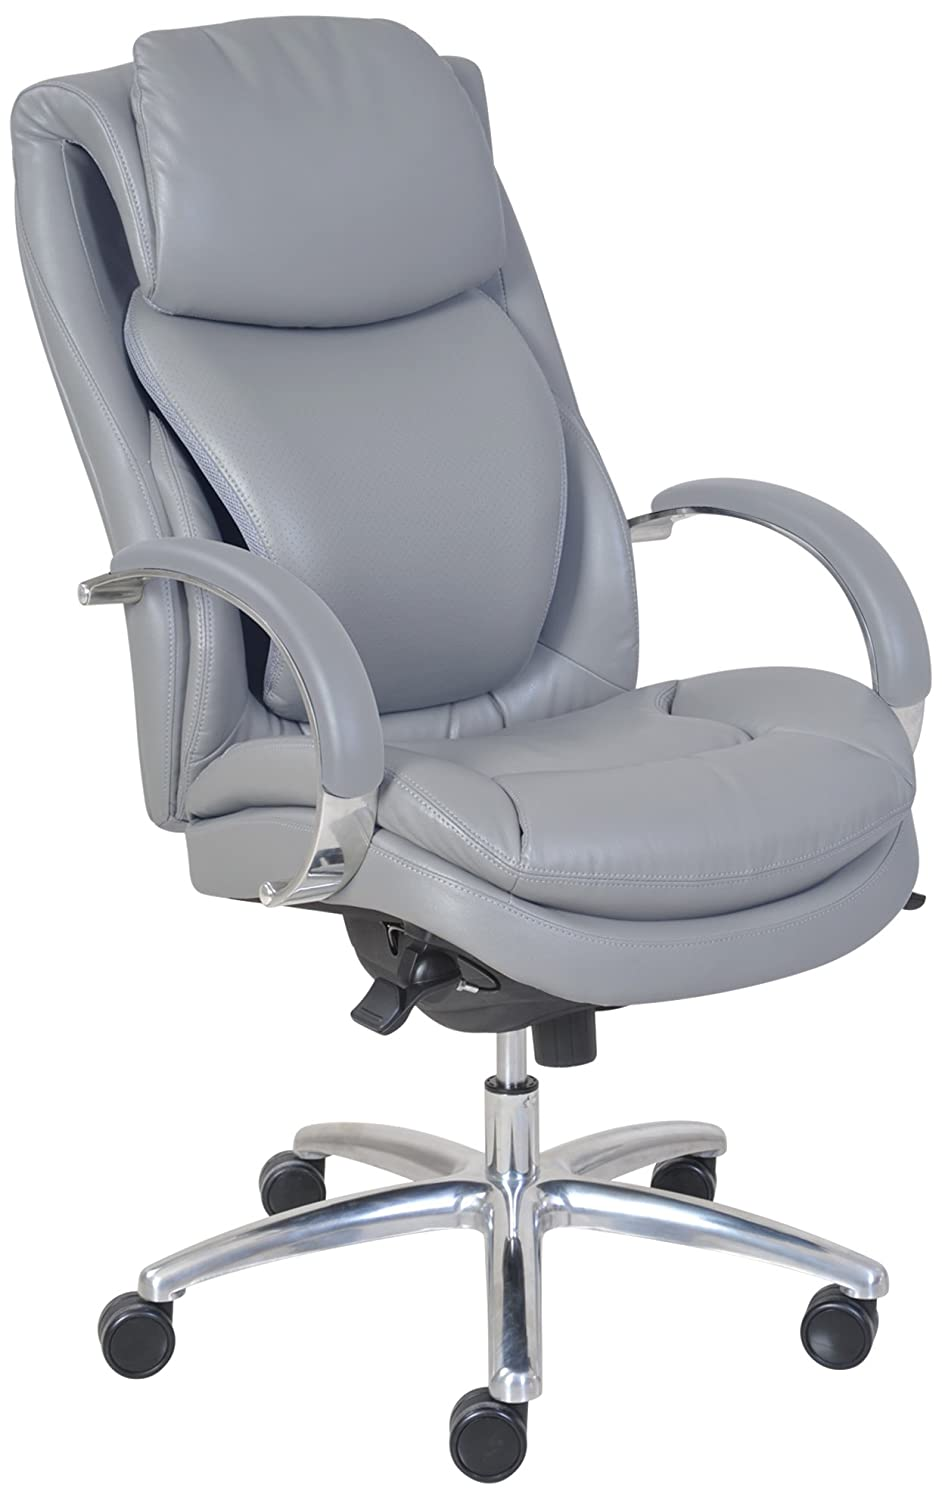 Best office chair 2016 - Serta 45451 Wellness By Design Air Commercial Series 100 Executive Puresoft Faux Leather Chair